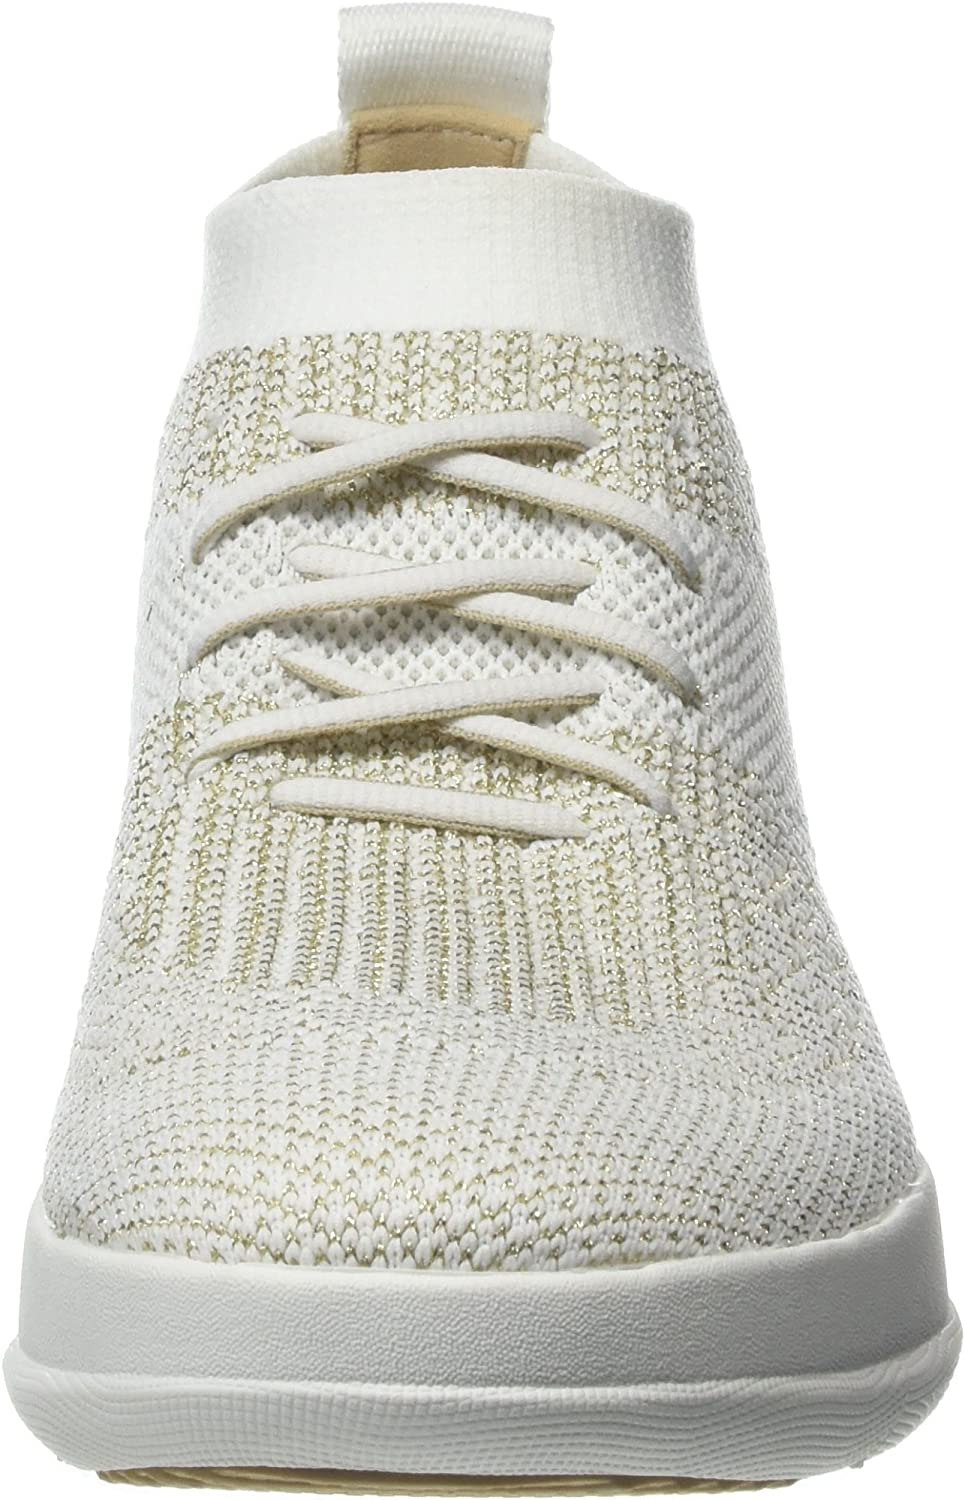 Fitflop Damen Uberknit Slip-on High Top Hohe Sneaker Mehrfarbig Metallic Gold Urban White 566